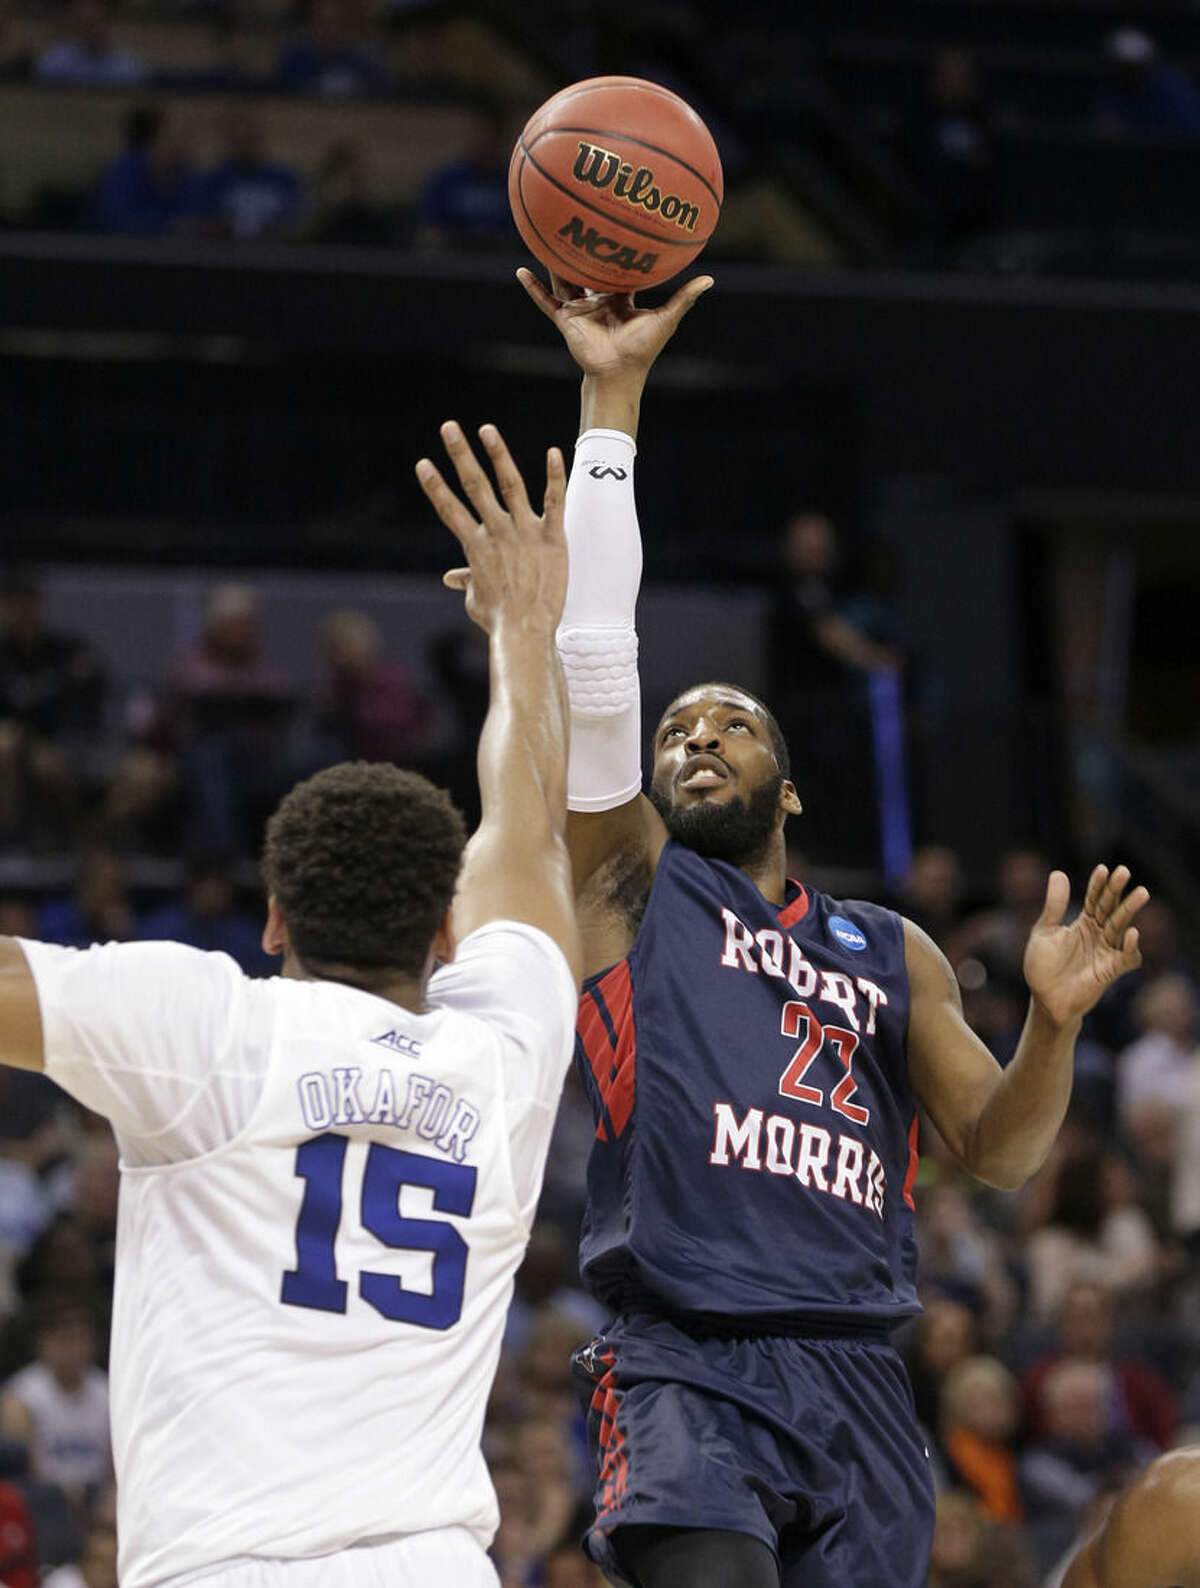 Robert Morris's Lucky Jones (22) shoots over Duke's Jahlil Okafor (15) during the first half of an NCAA tournament college basketball game in the Round of 64 in Charlotte, N.C., Friday, March 20, 2015. (AP Photo/Nell Redmond)